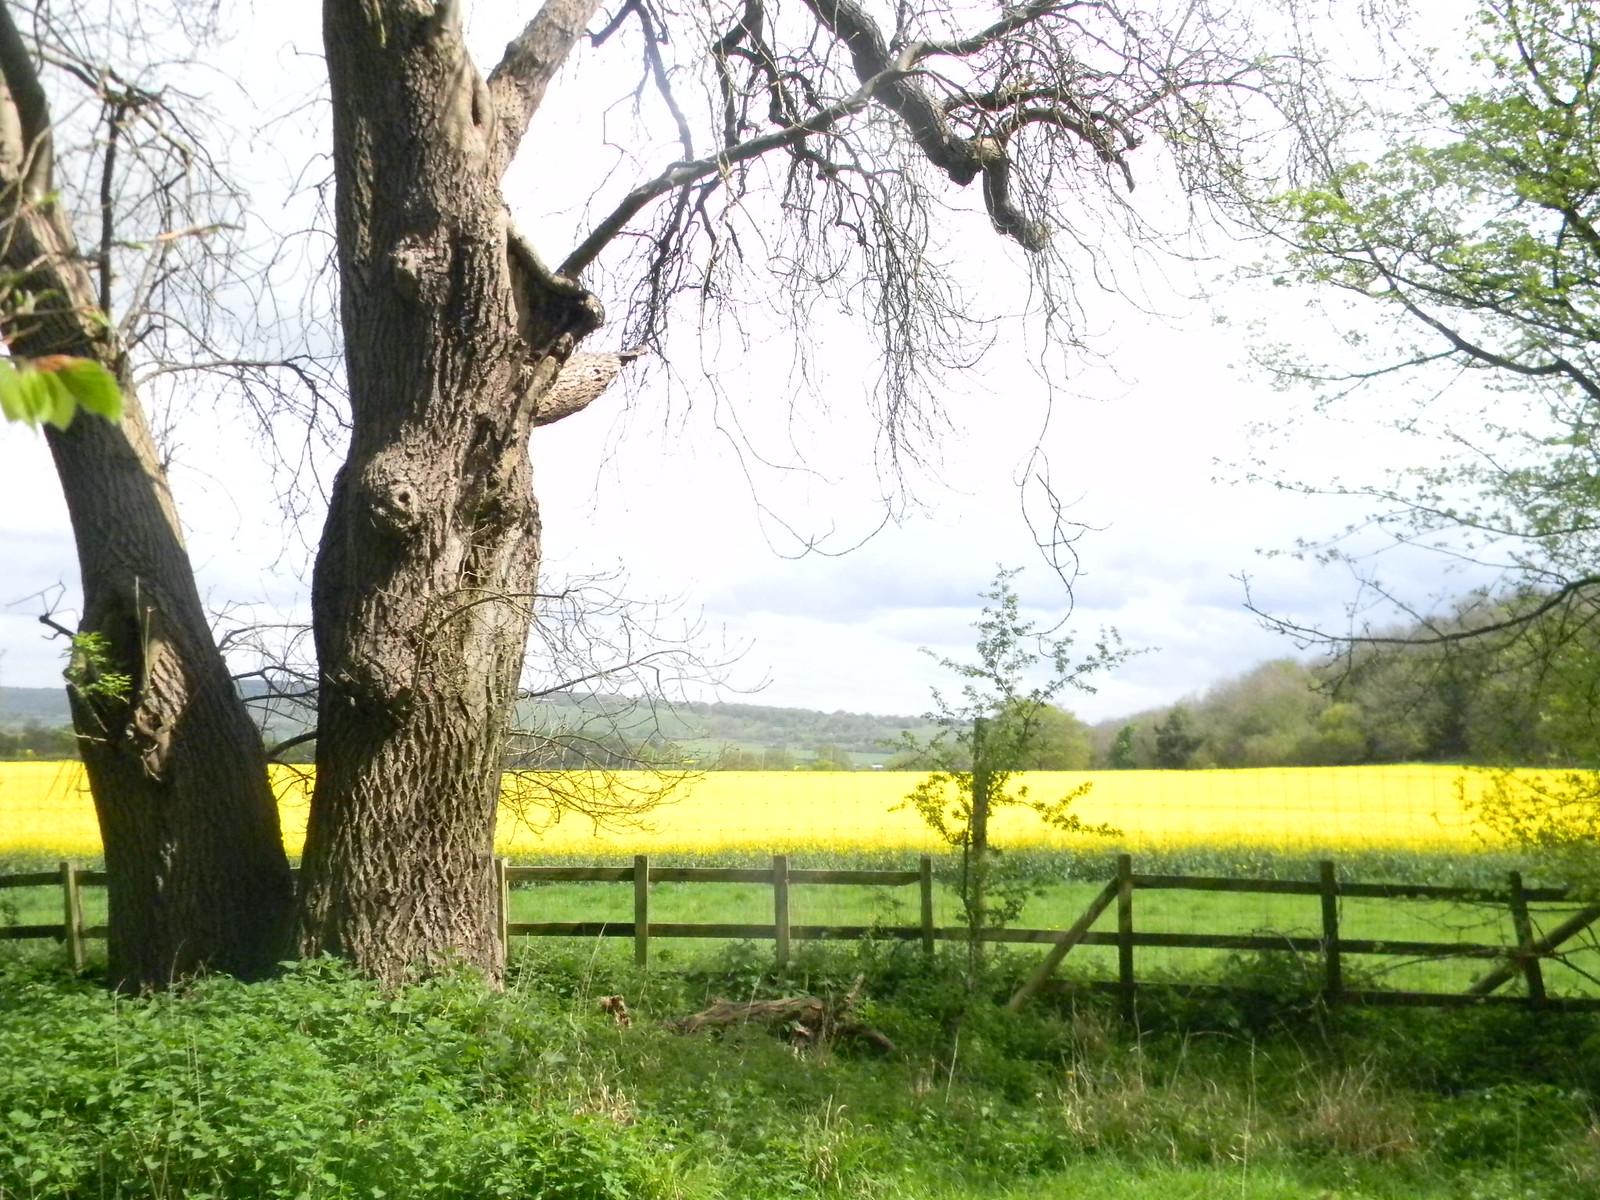 Tree with rapefield Tring to Berkhamsted